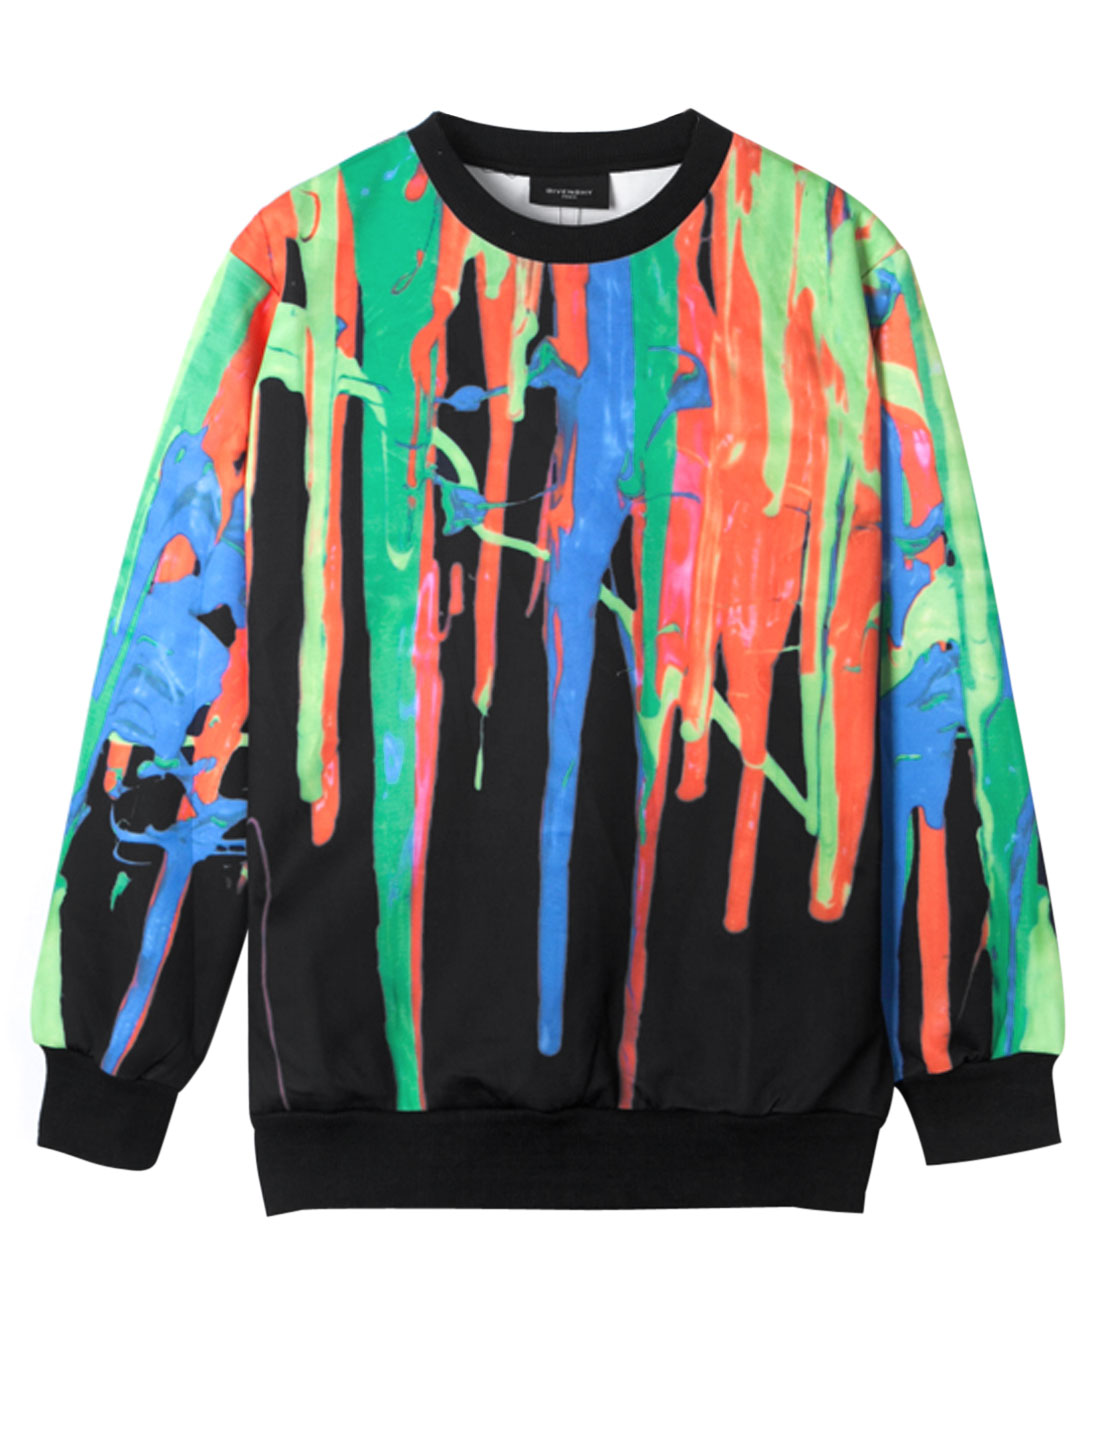 Men Round Neck Novelty Prints Long Sleeve Ribbed Hem Sweatshirt Multicolor M